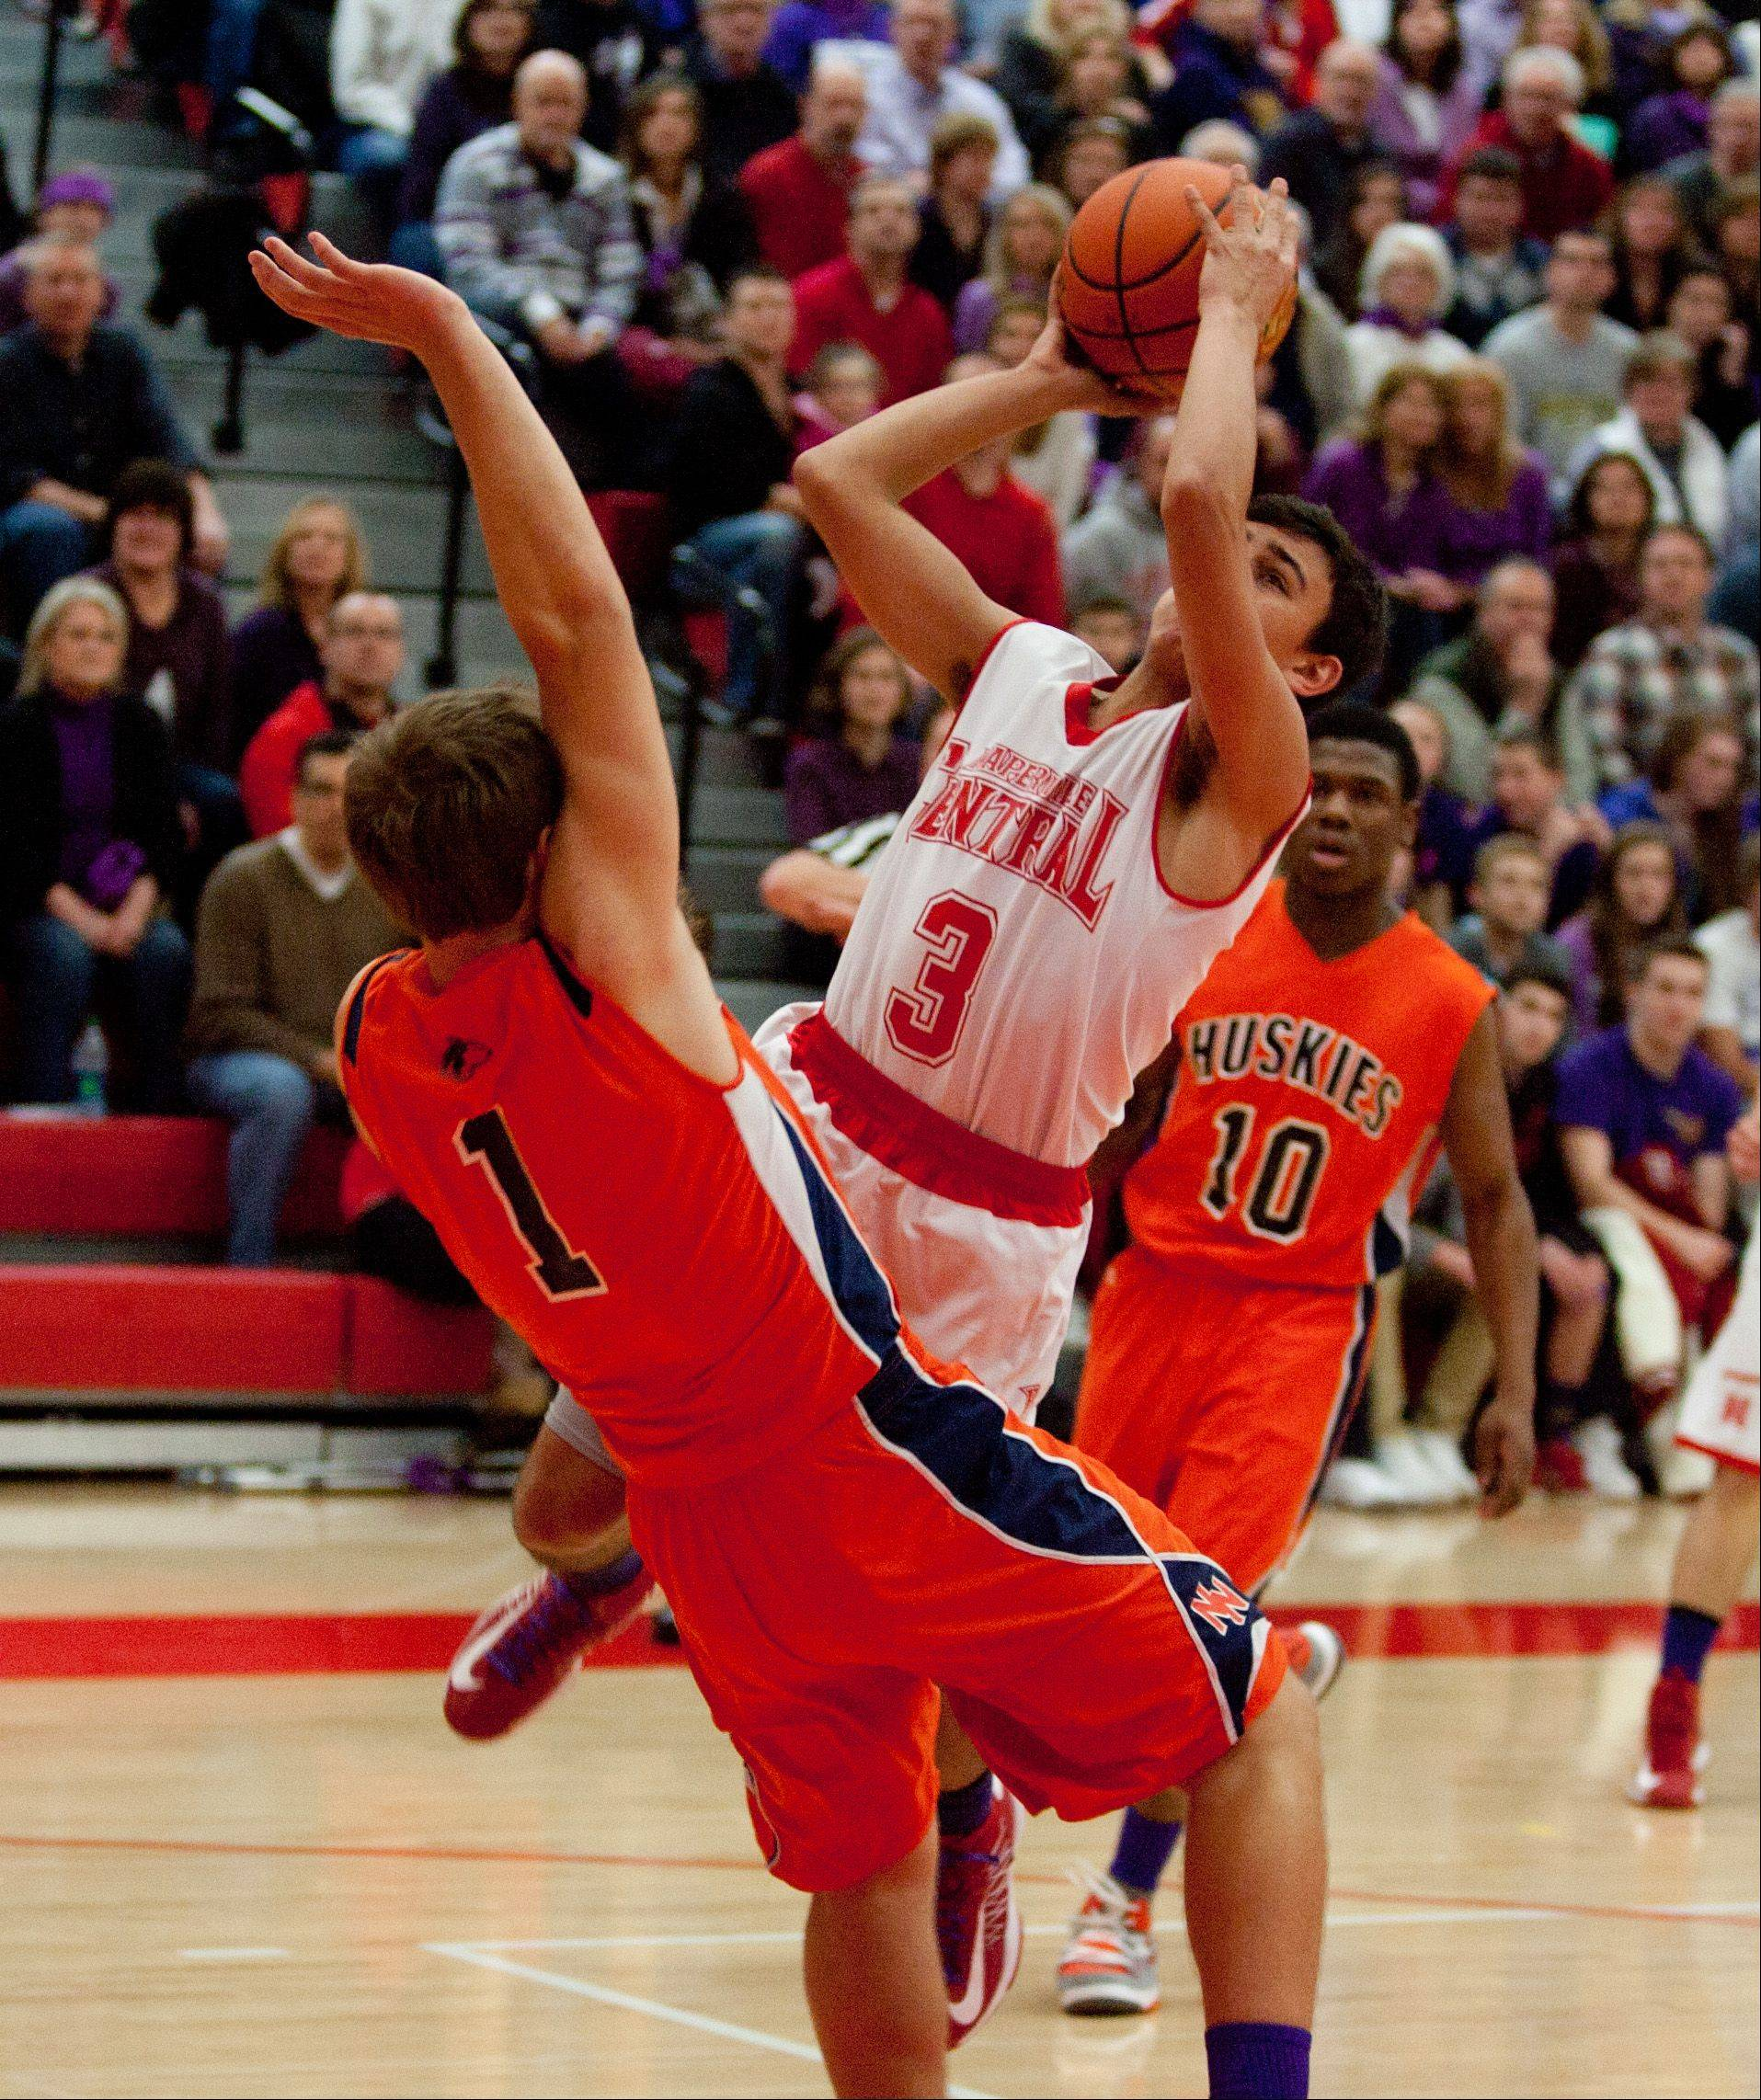 Naperville Central's Nicky Lopez collides with Naperville North's Derek Westman .